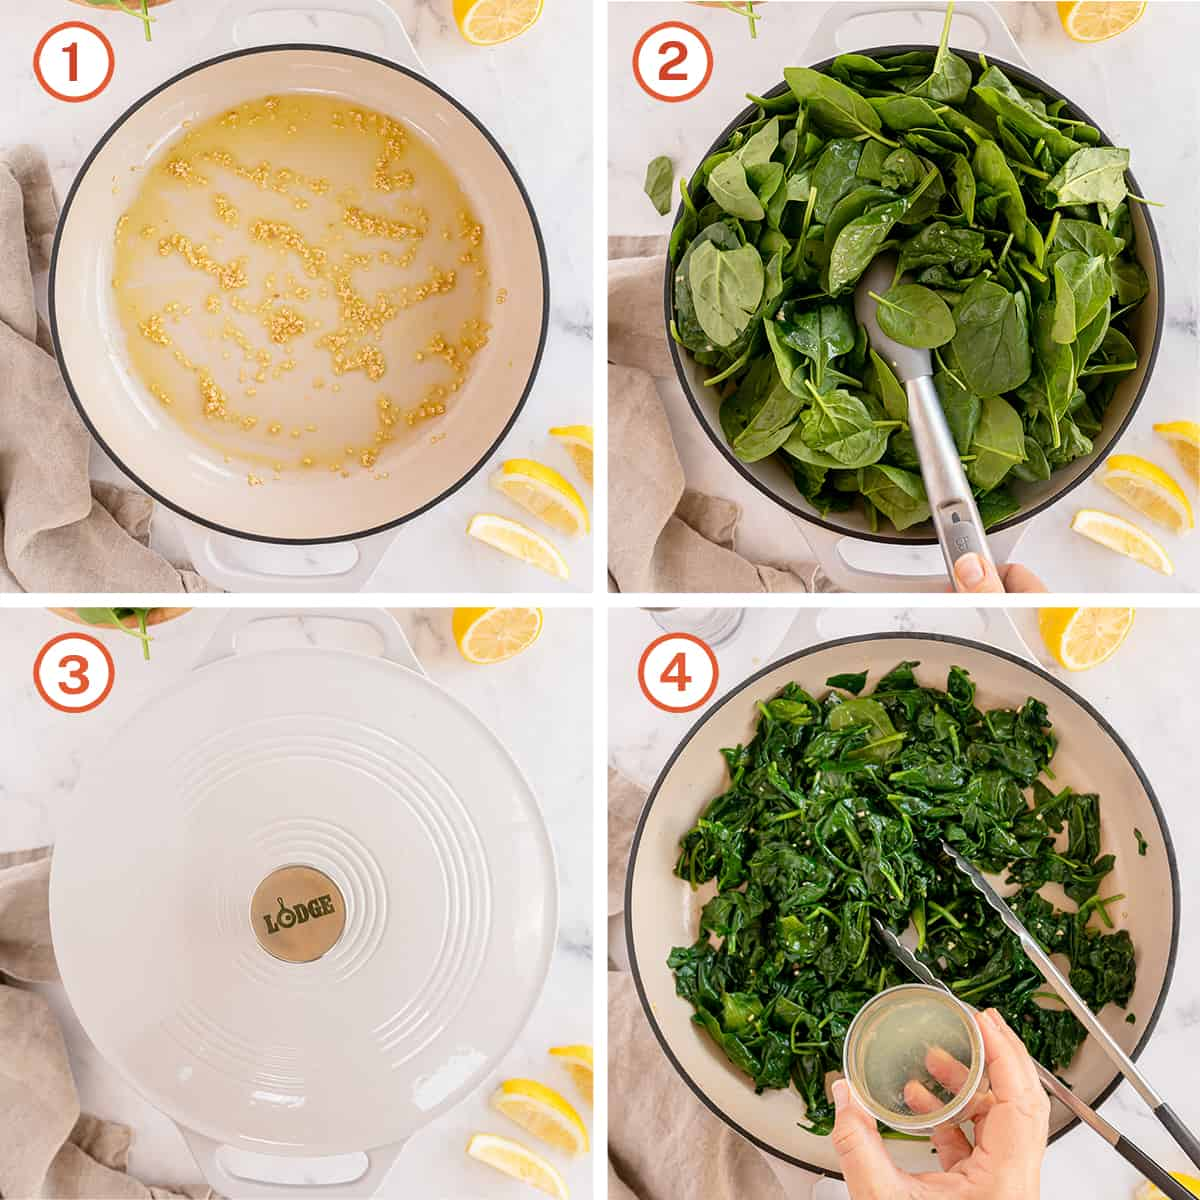 Garlic and spinach cooking in a pan with lemon juice.